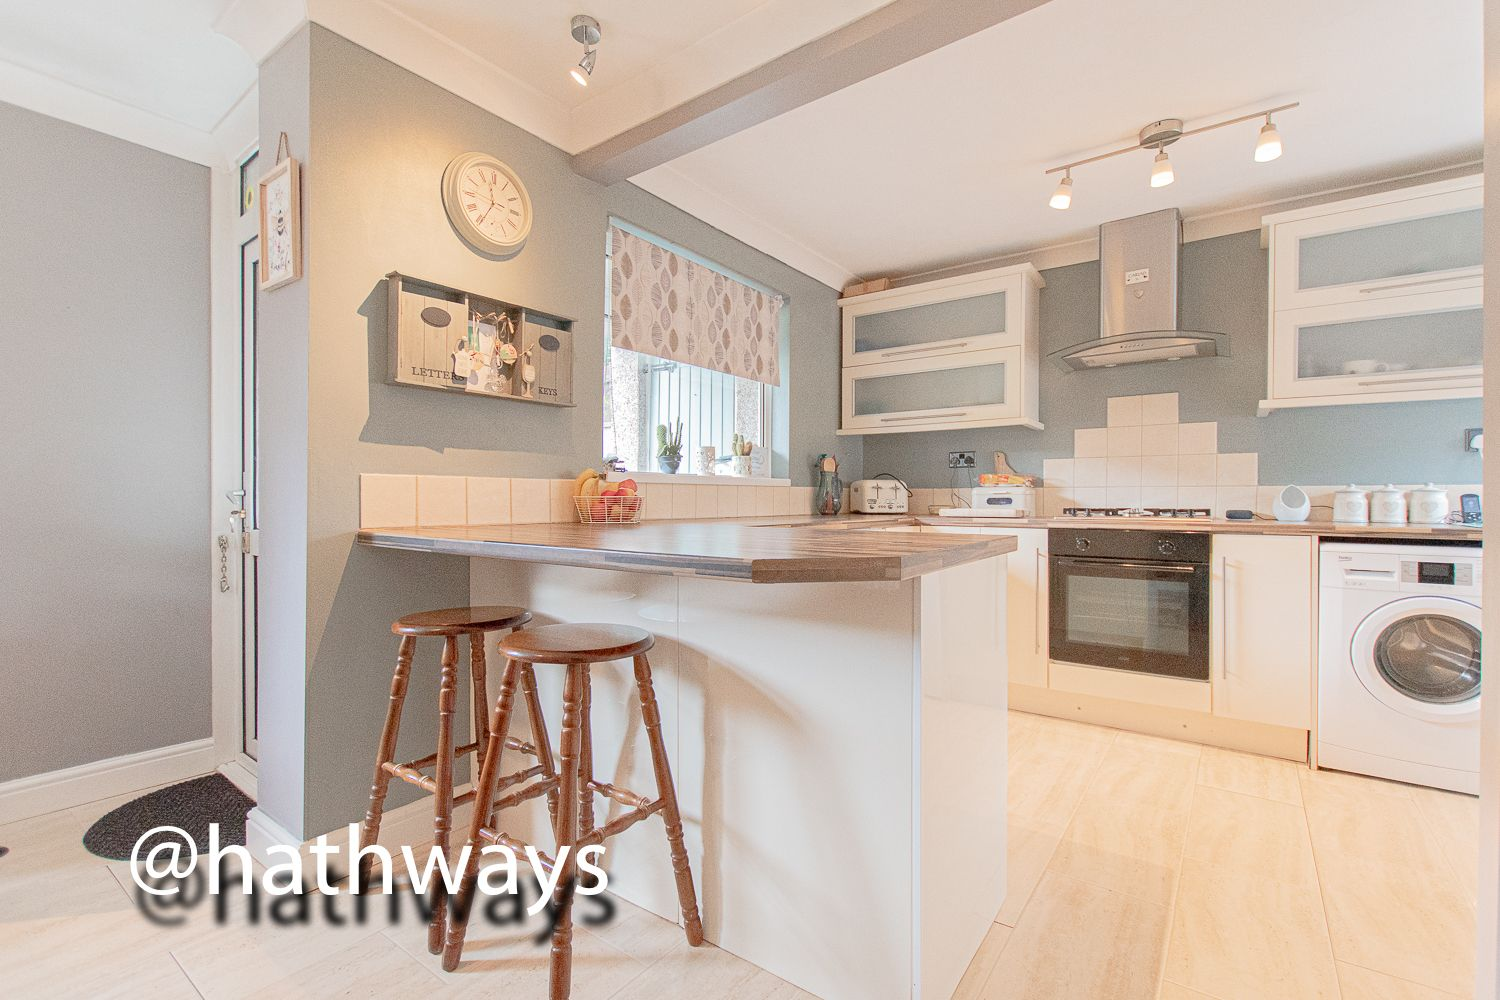 3 bed house for sale in The Haldens, NP44